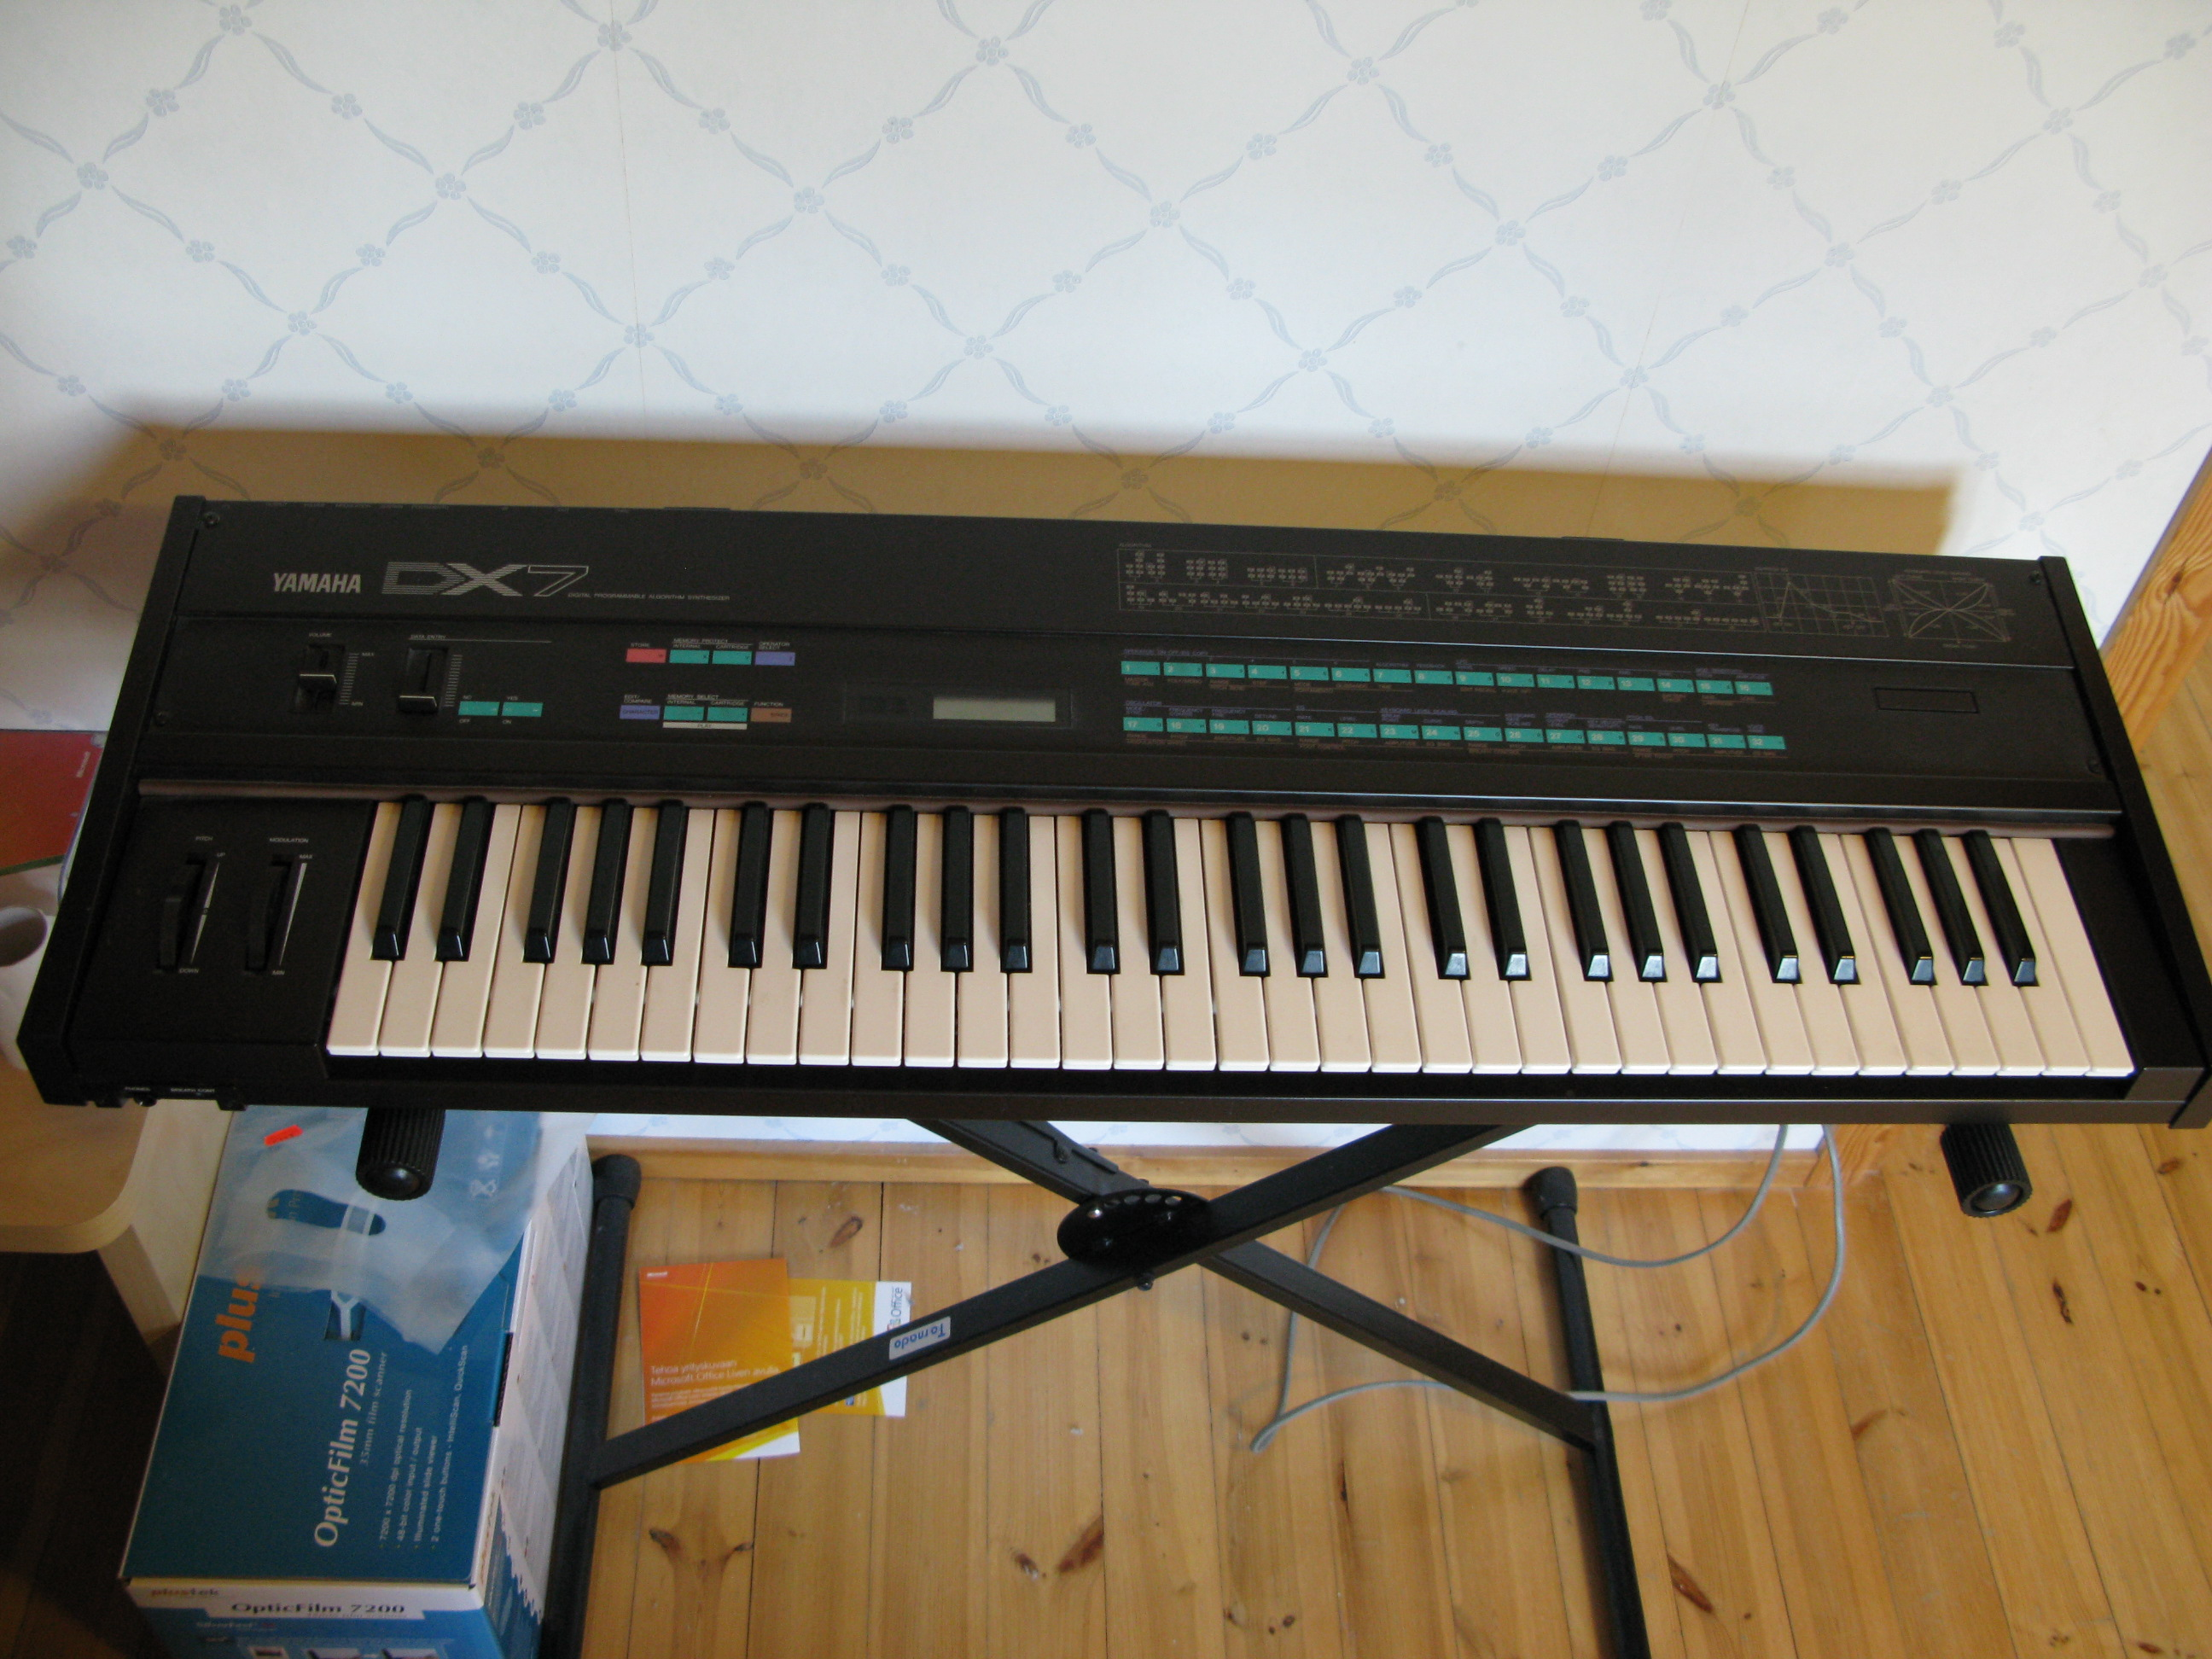 file yamaha dx7 on stand jpg wikimedia commons rh commons wikimedia org yamaha dx7 user manual pdf yamaha dx7 owners manual pdf